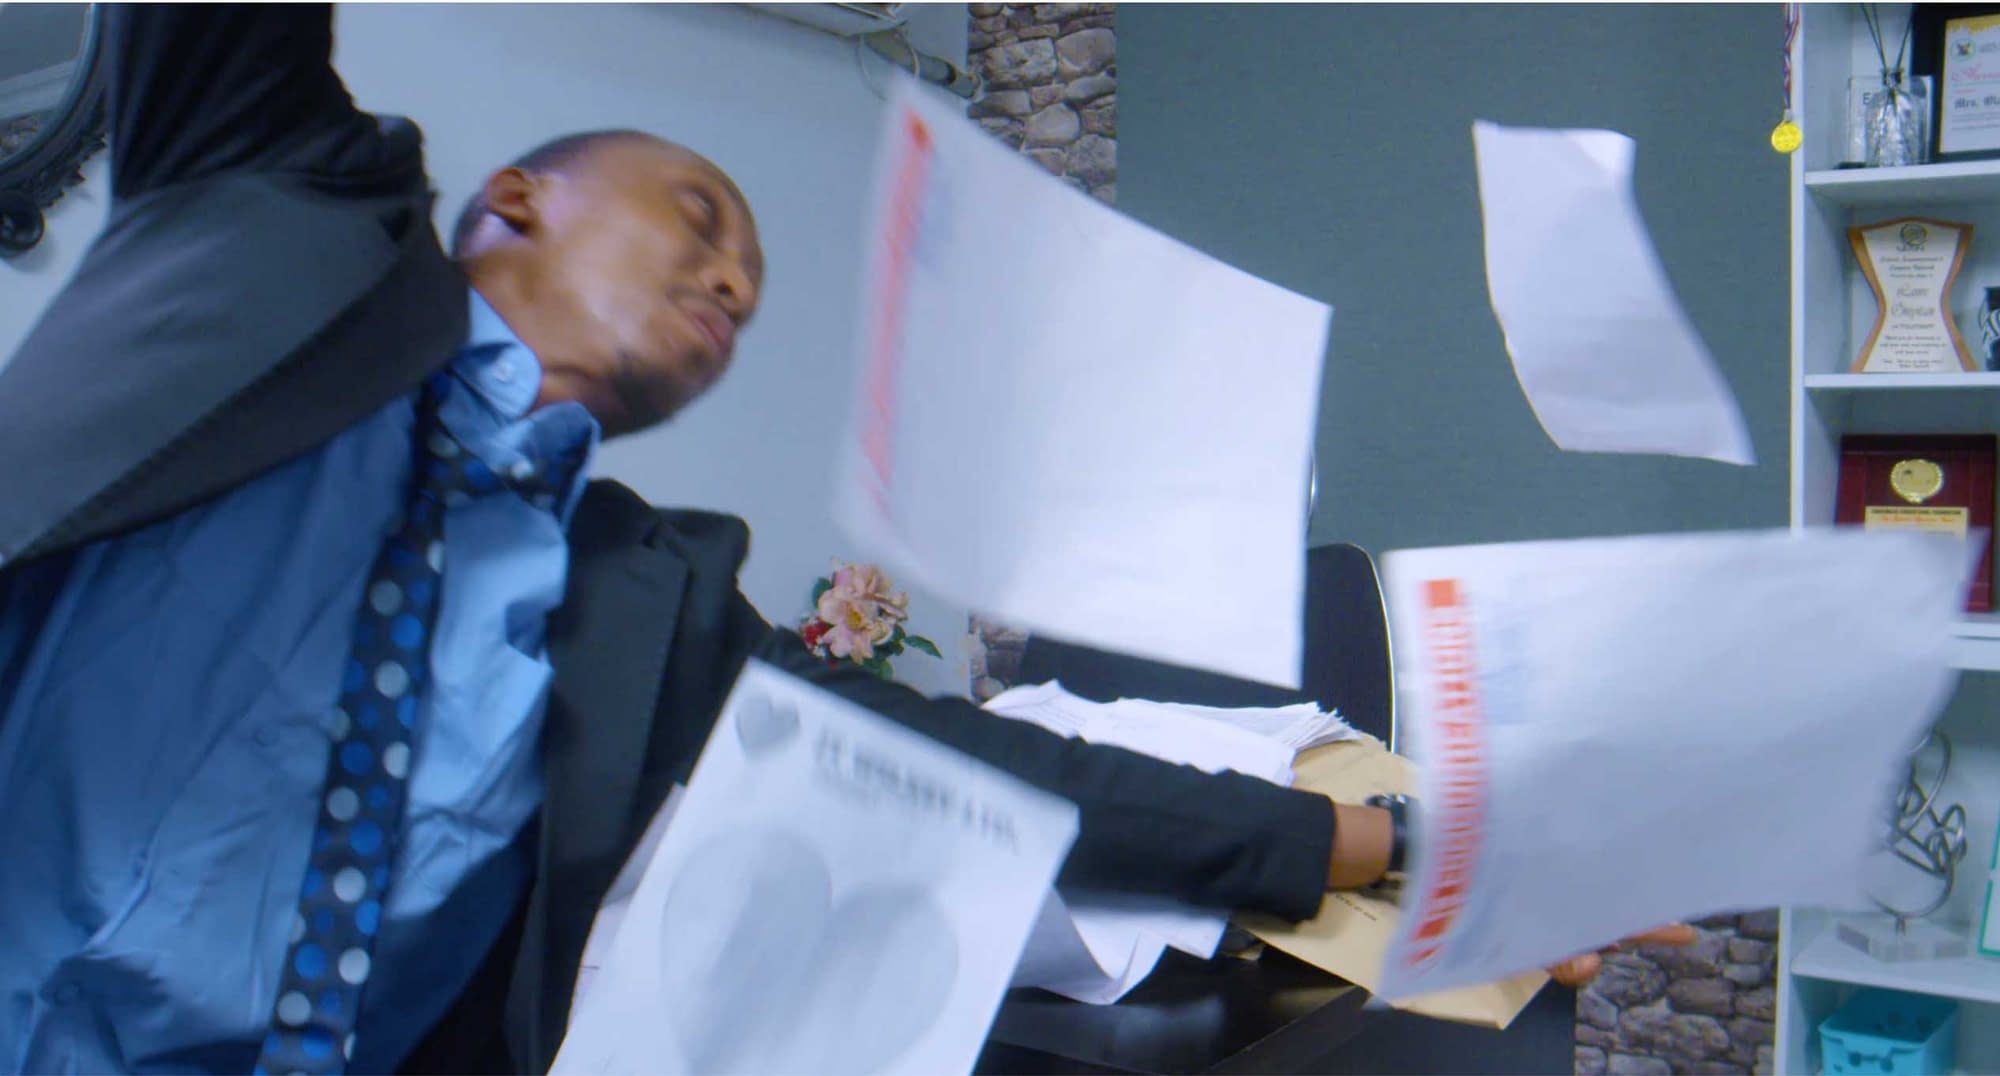 Frank Donga trying to catch flying paper